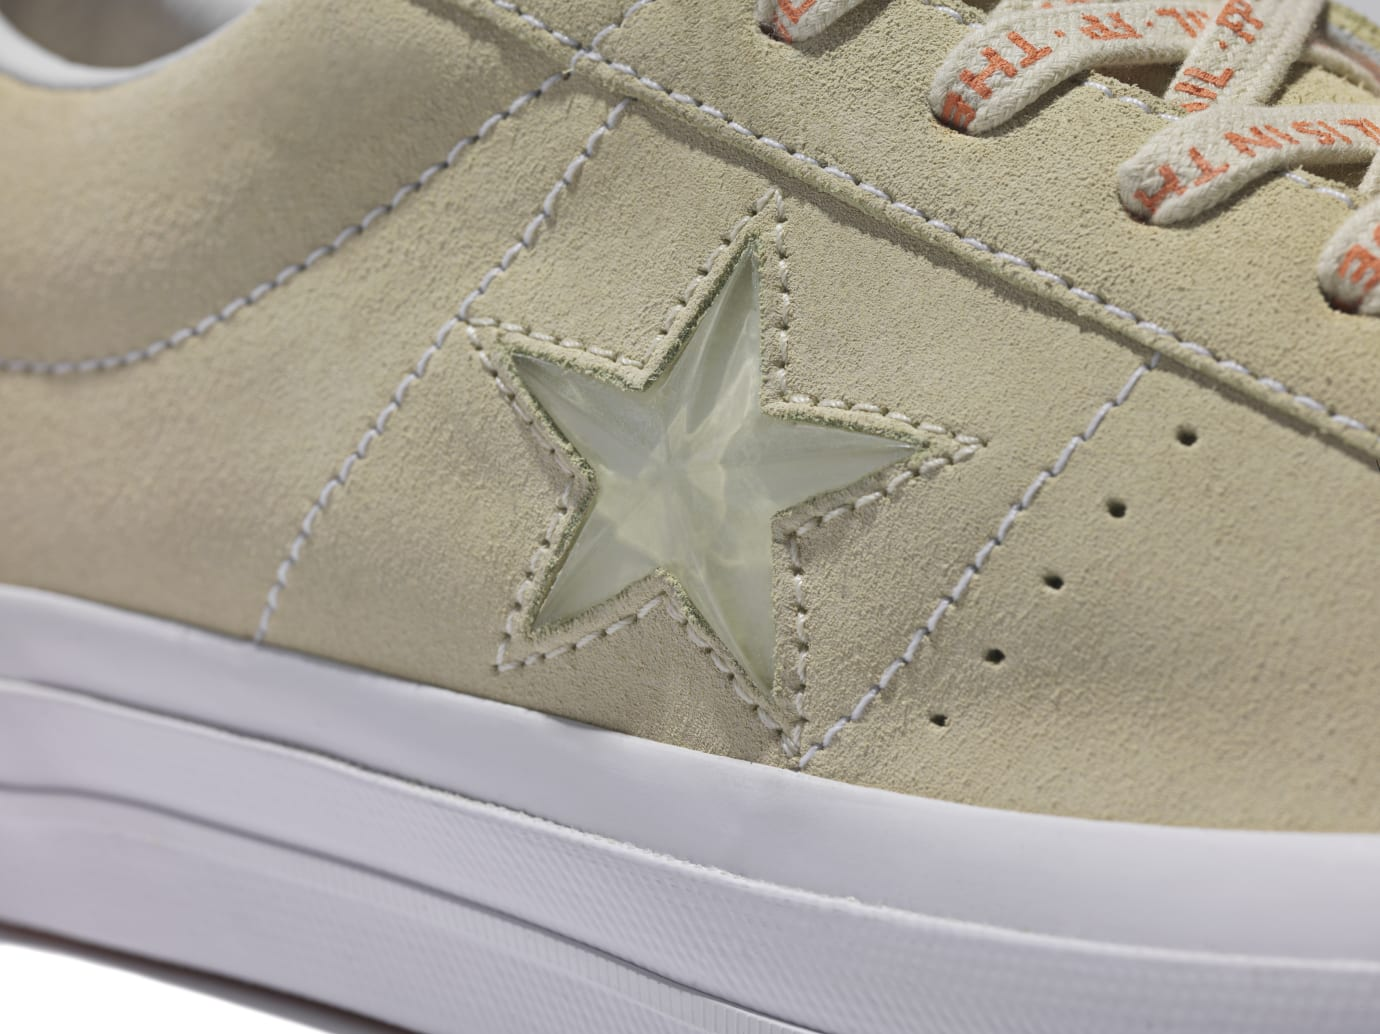 Converse One Star x Footpatrol (Jewel)